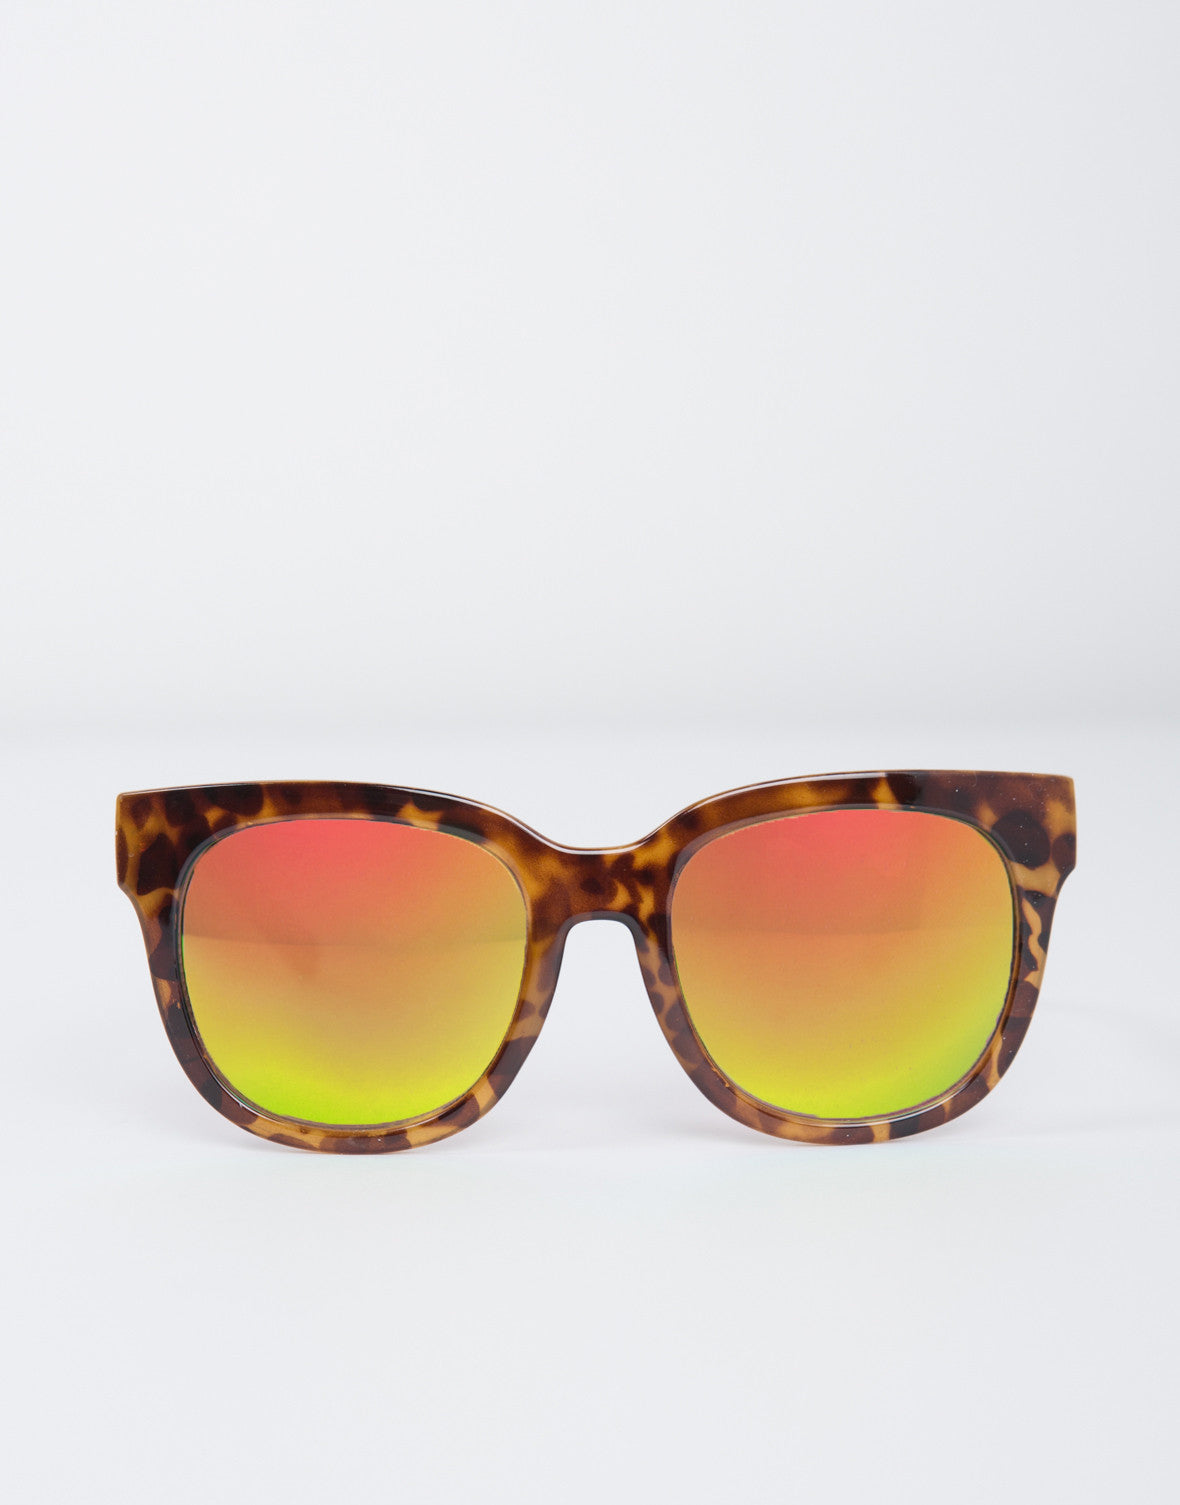 Mirrored Wayfarer Sunnies